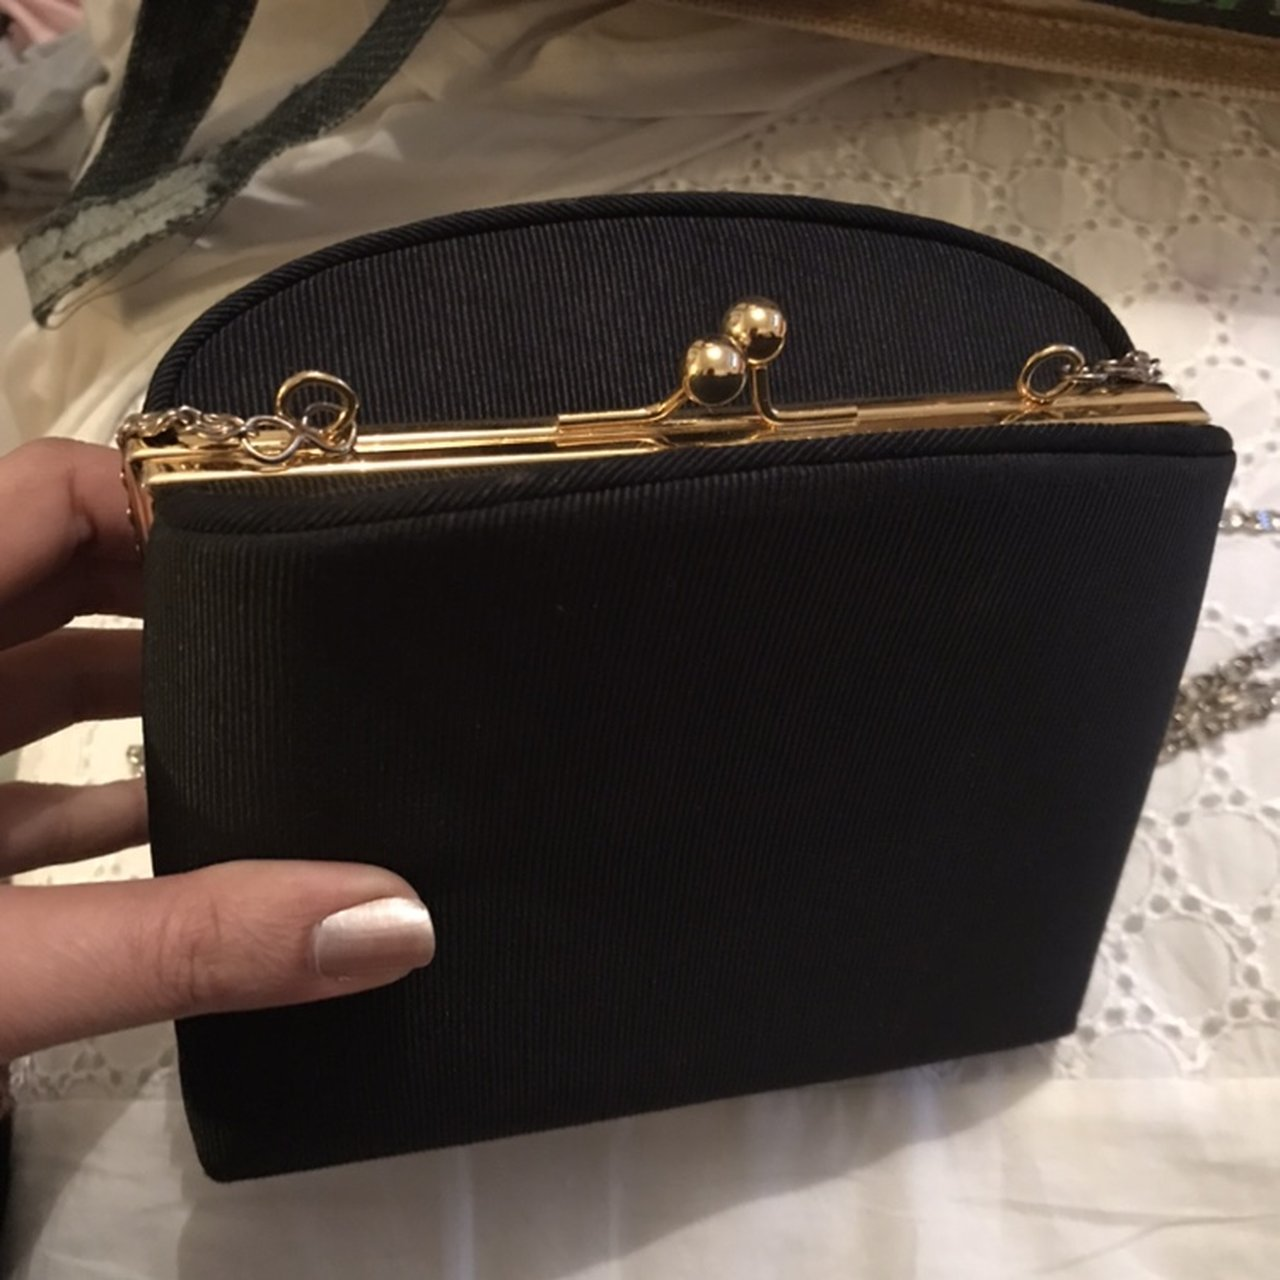 Vintage clutch purse with gold detailing f031201895085